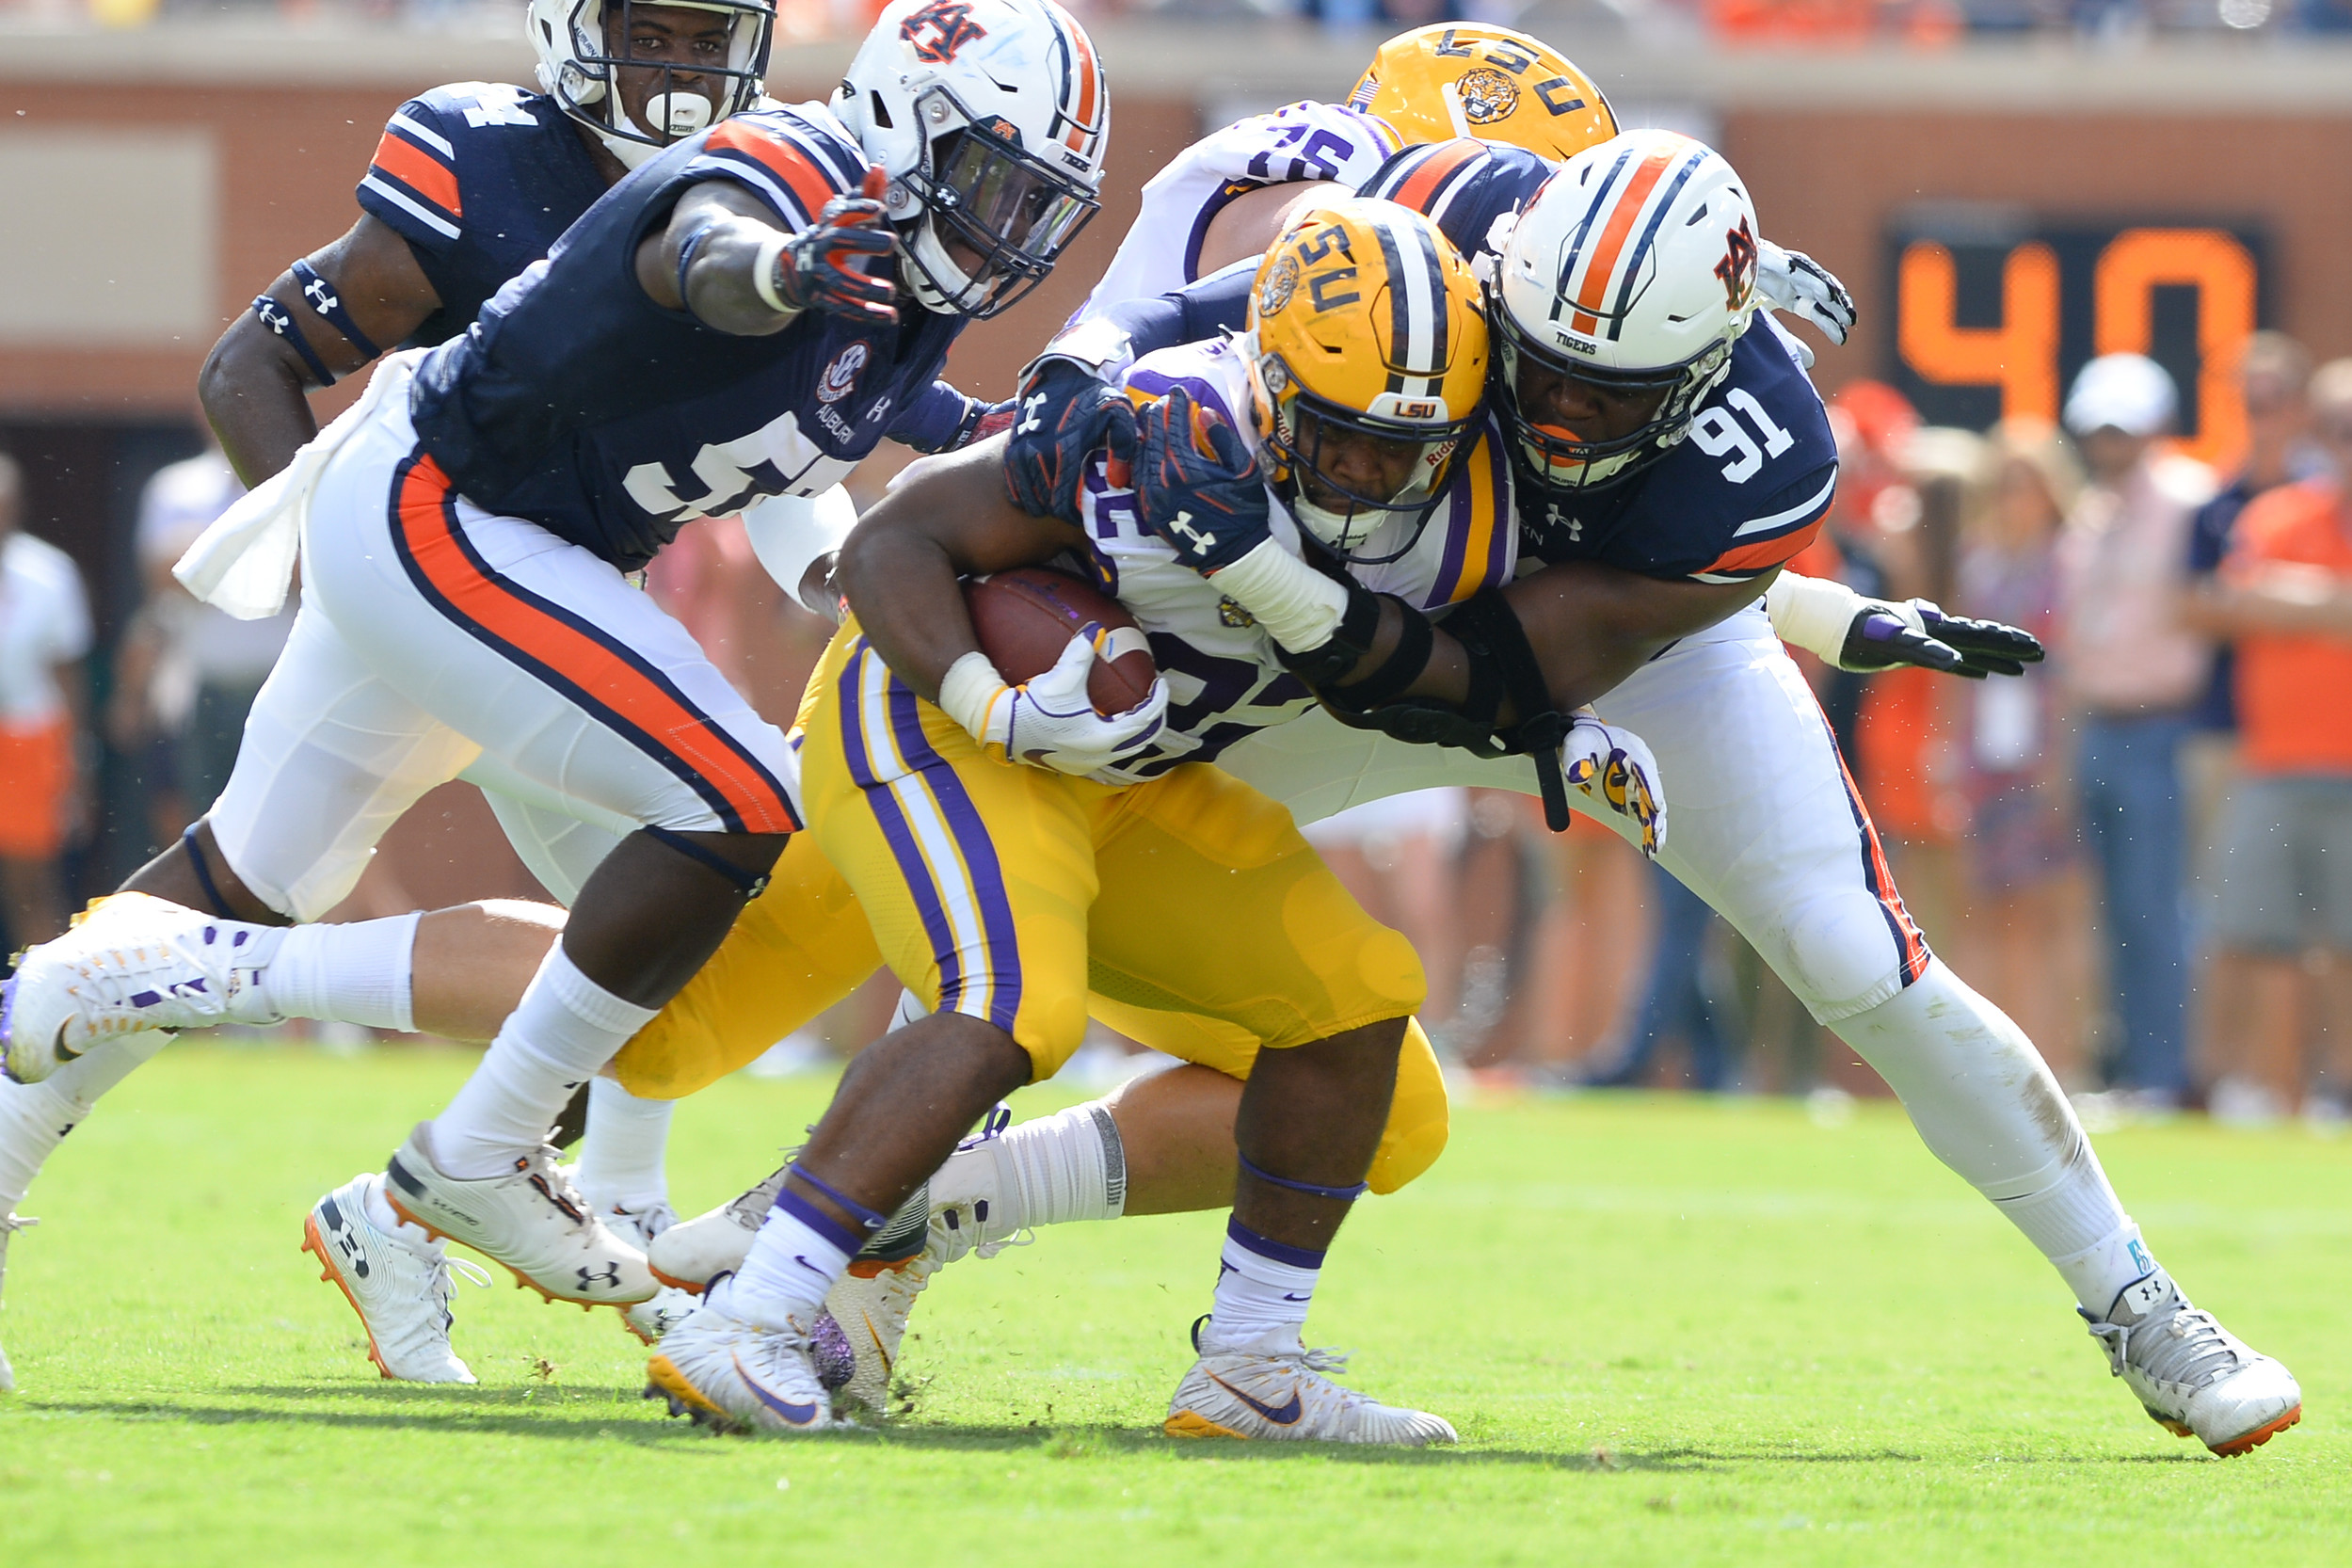 LSU Tigers running back Clyde Edwards-Helaire (22) is tackled for a loss by Auburn Tigers defensive lineman Nick Coe (91) during the first half of Saturday's game, at Jordan Hare Stadium in Auburn. (Contributed by Jeff Johnsey)